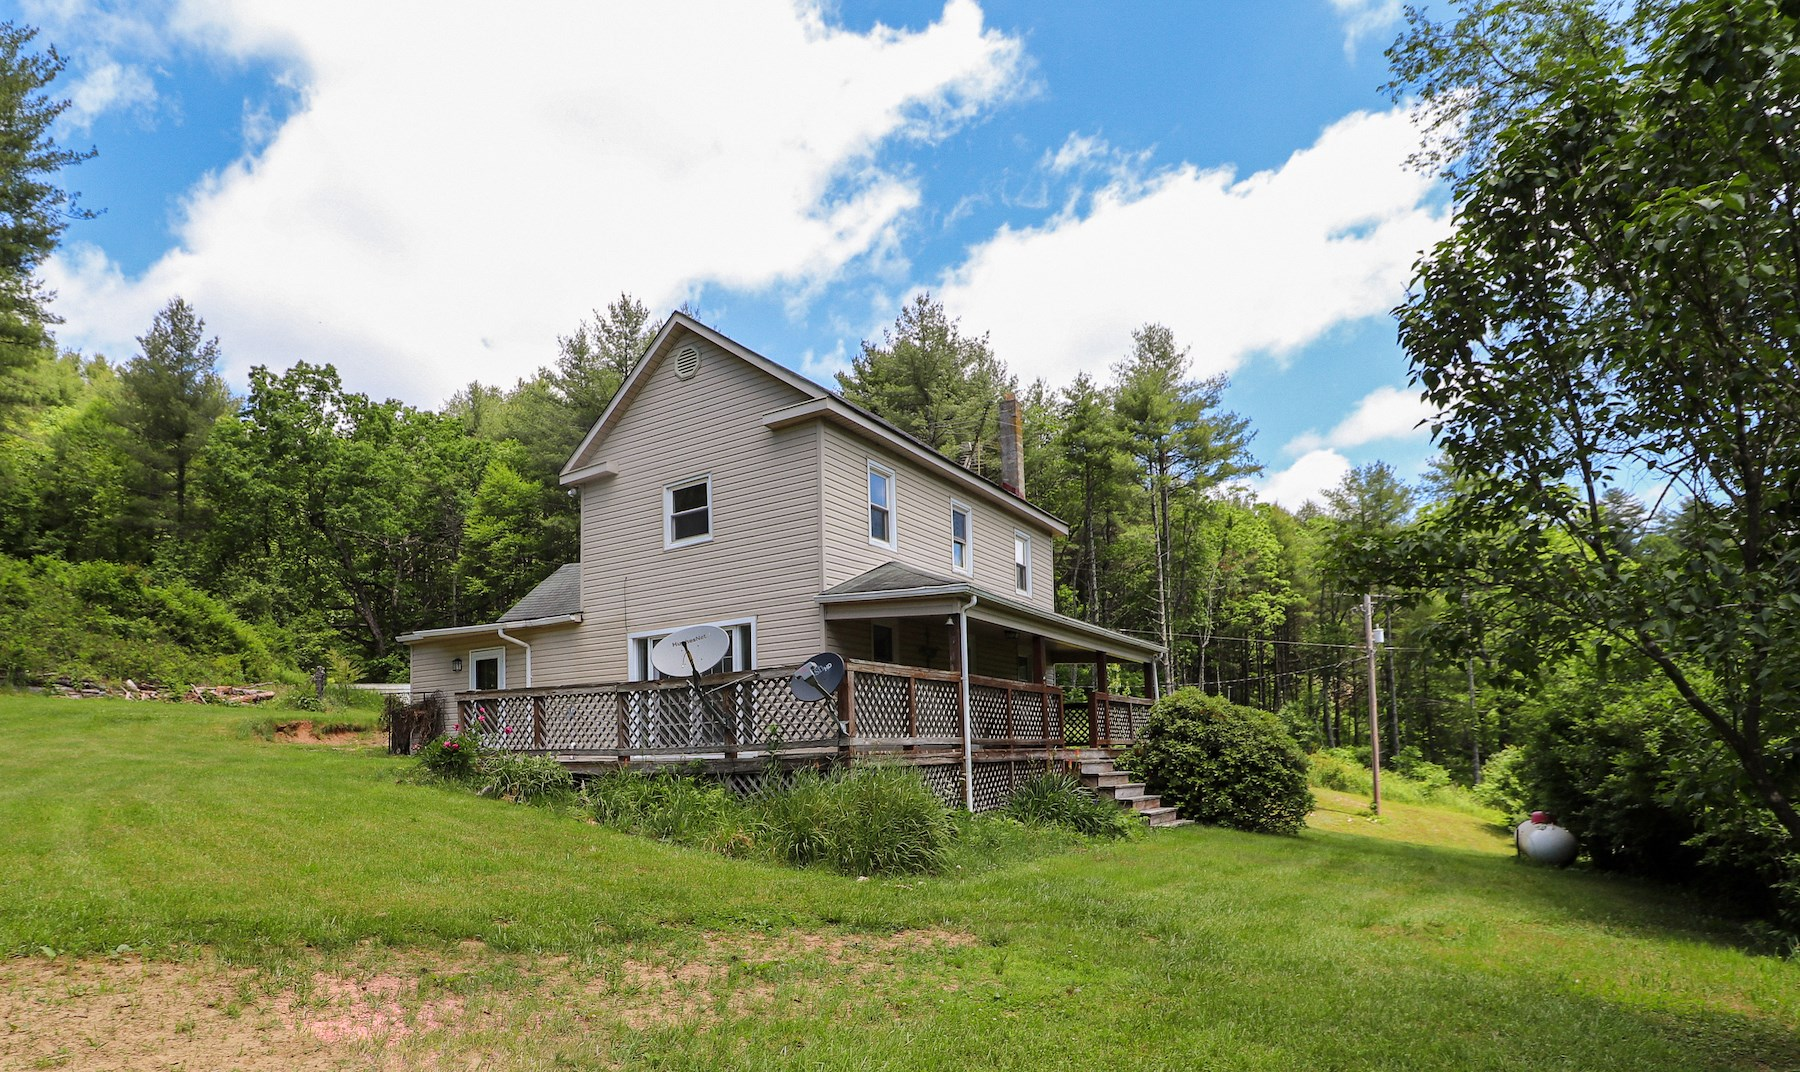 Home for Sale in Indian Valley VA!